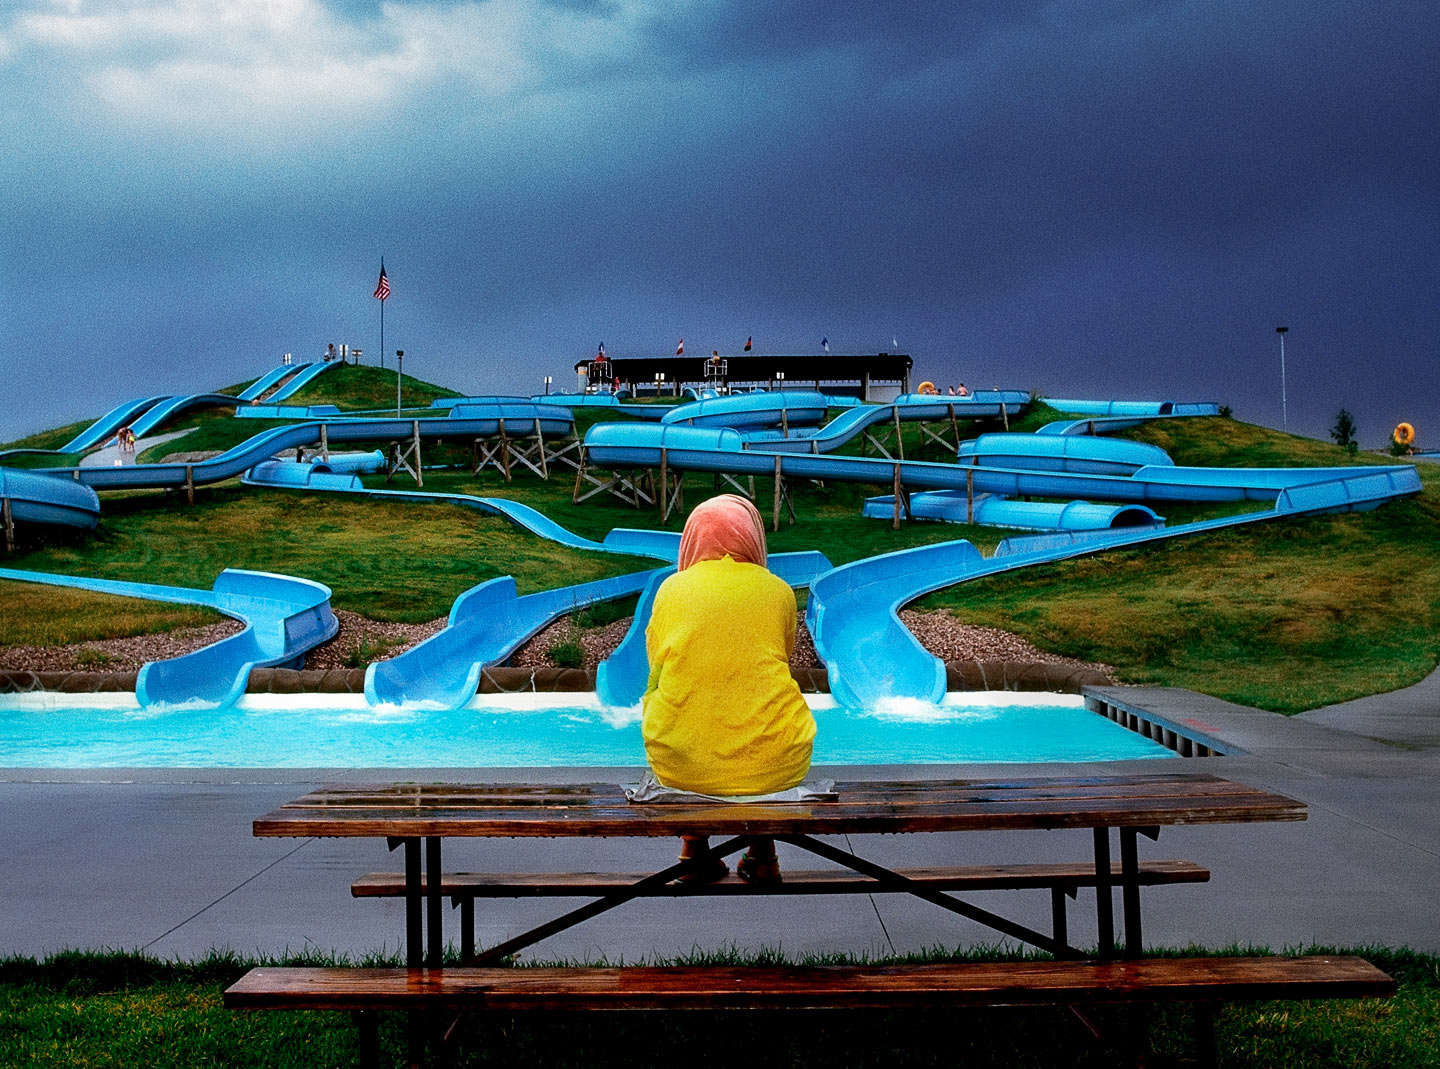 South Dakota water slides - Stock : On The Road : NY - Portrait Photographer Video, Architectural, Corporate Editorial Location Photography